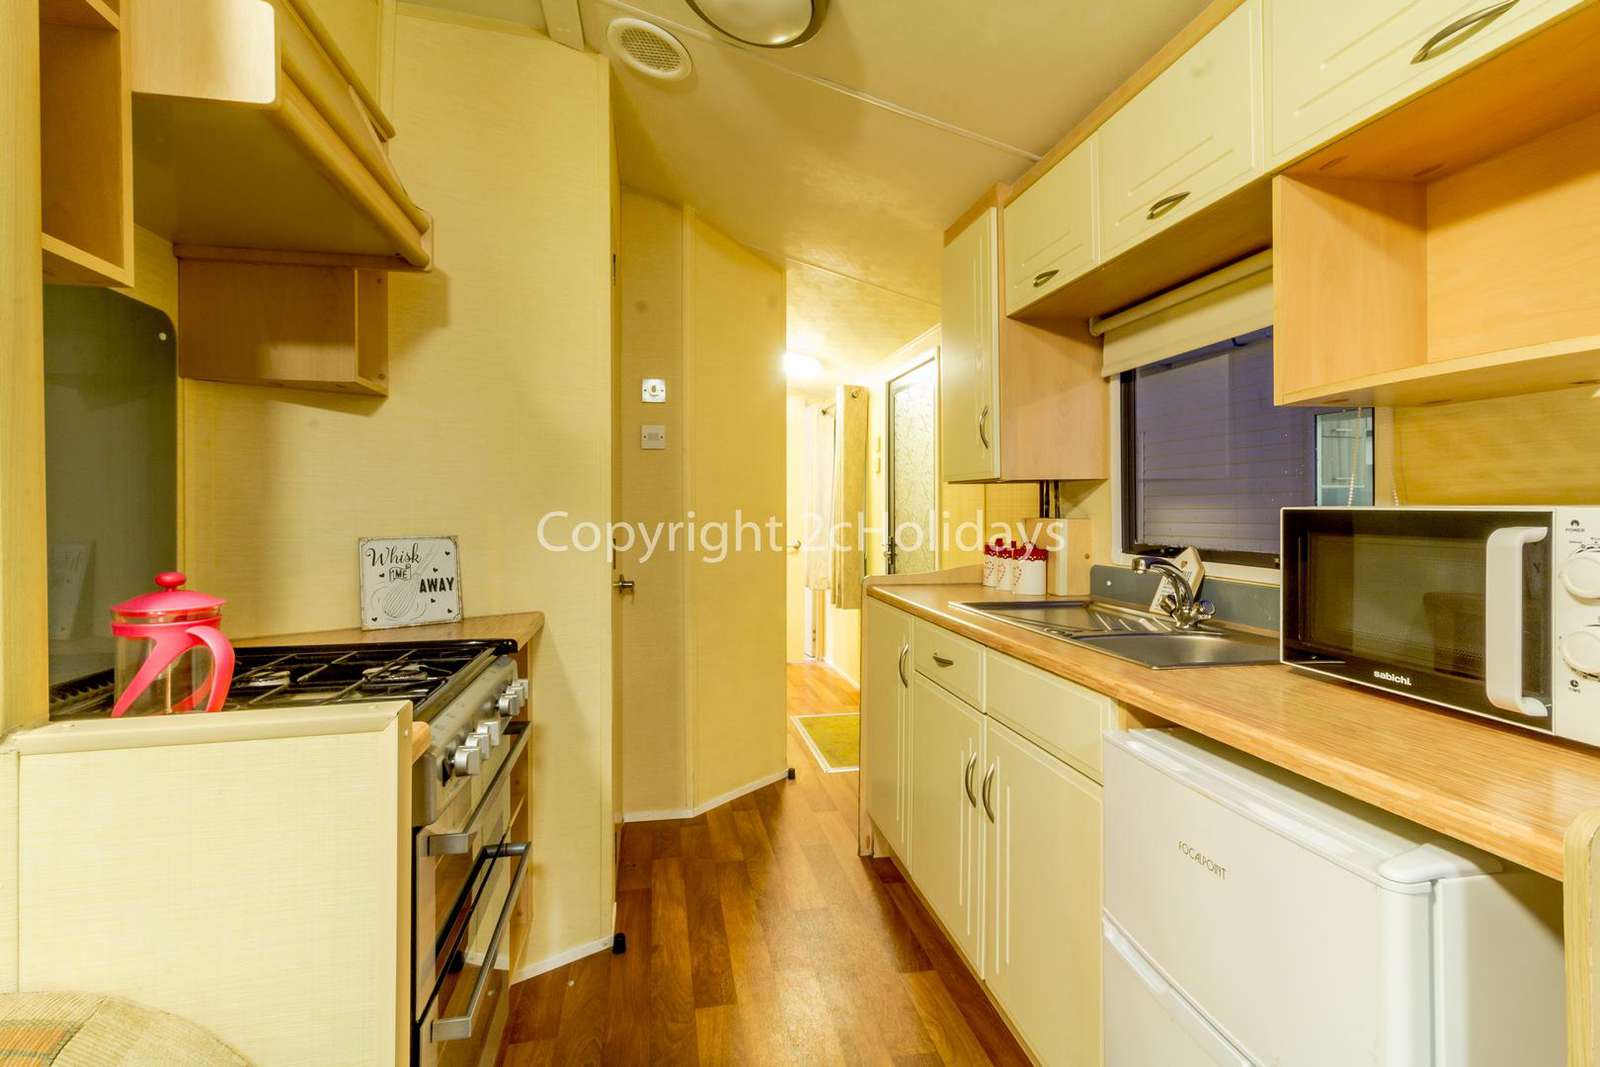 Fully equipped kitchen, great for self-catering holidays!